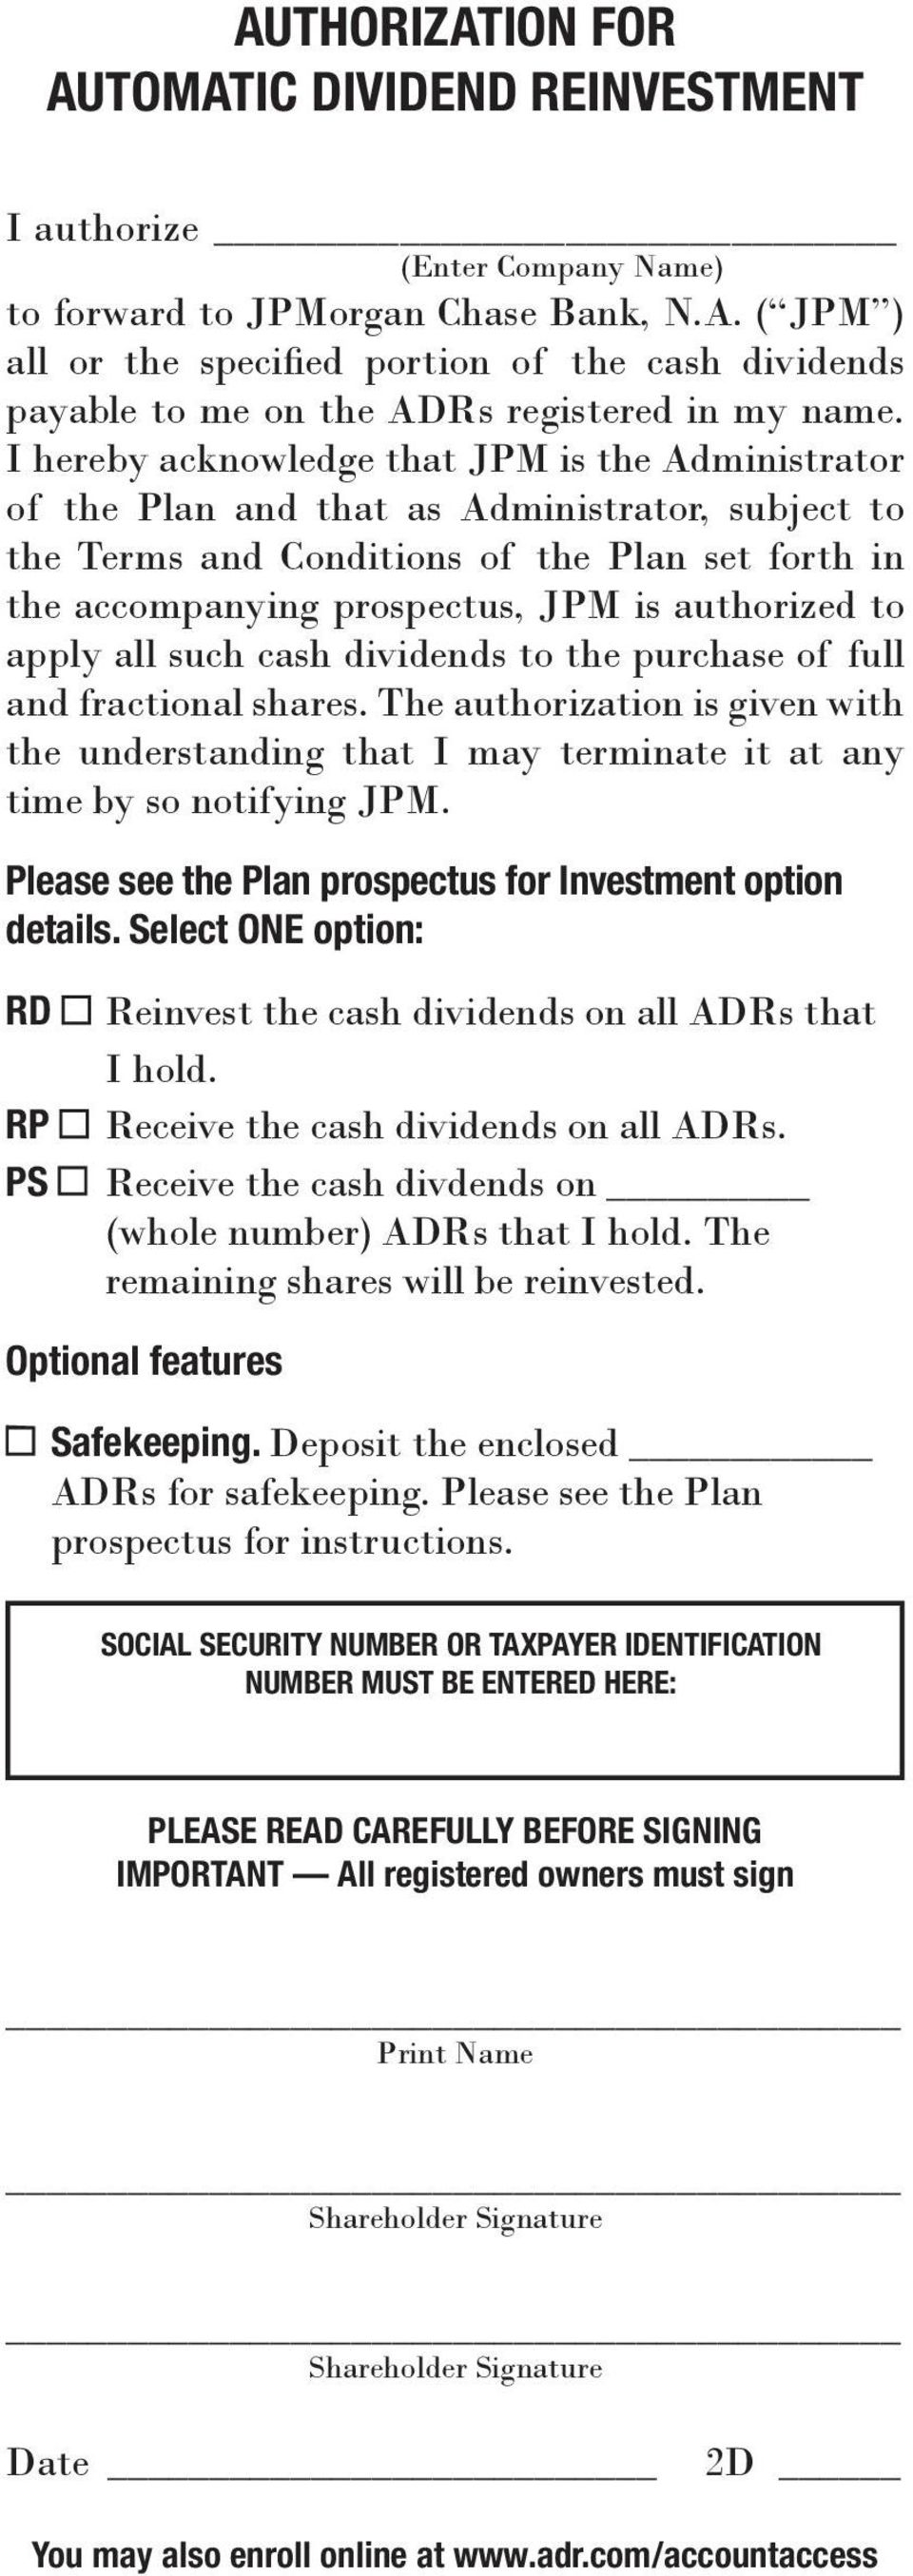 to apply all such cash dividends to the purchase of full and fractional shares. The authorization is given with the understanding that I may terminate it at any time by so notifying JPM.